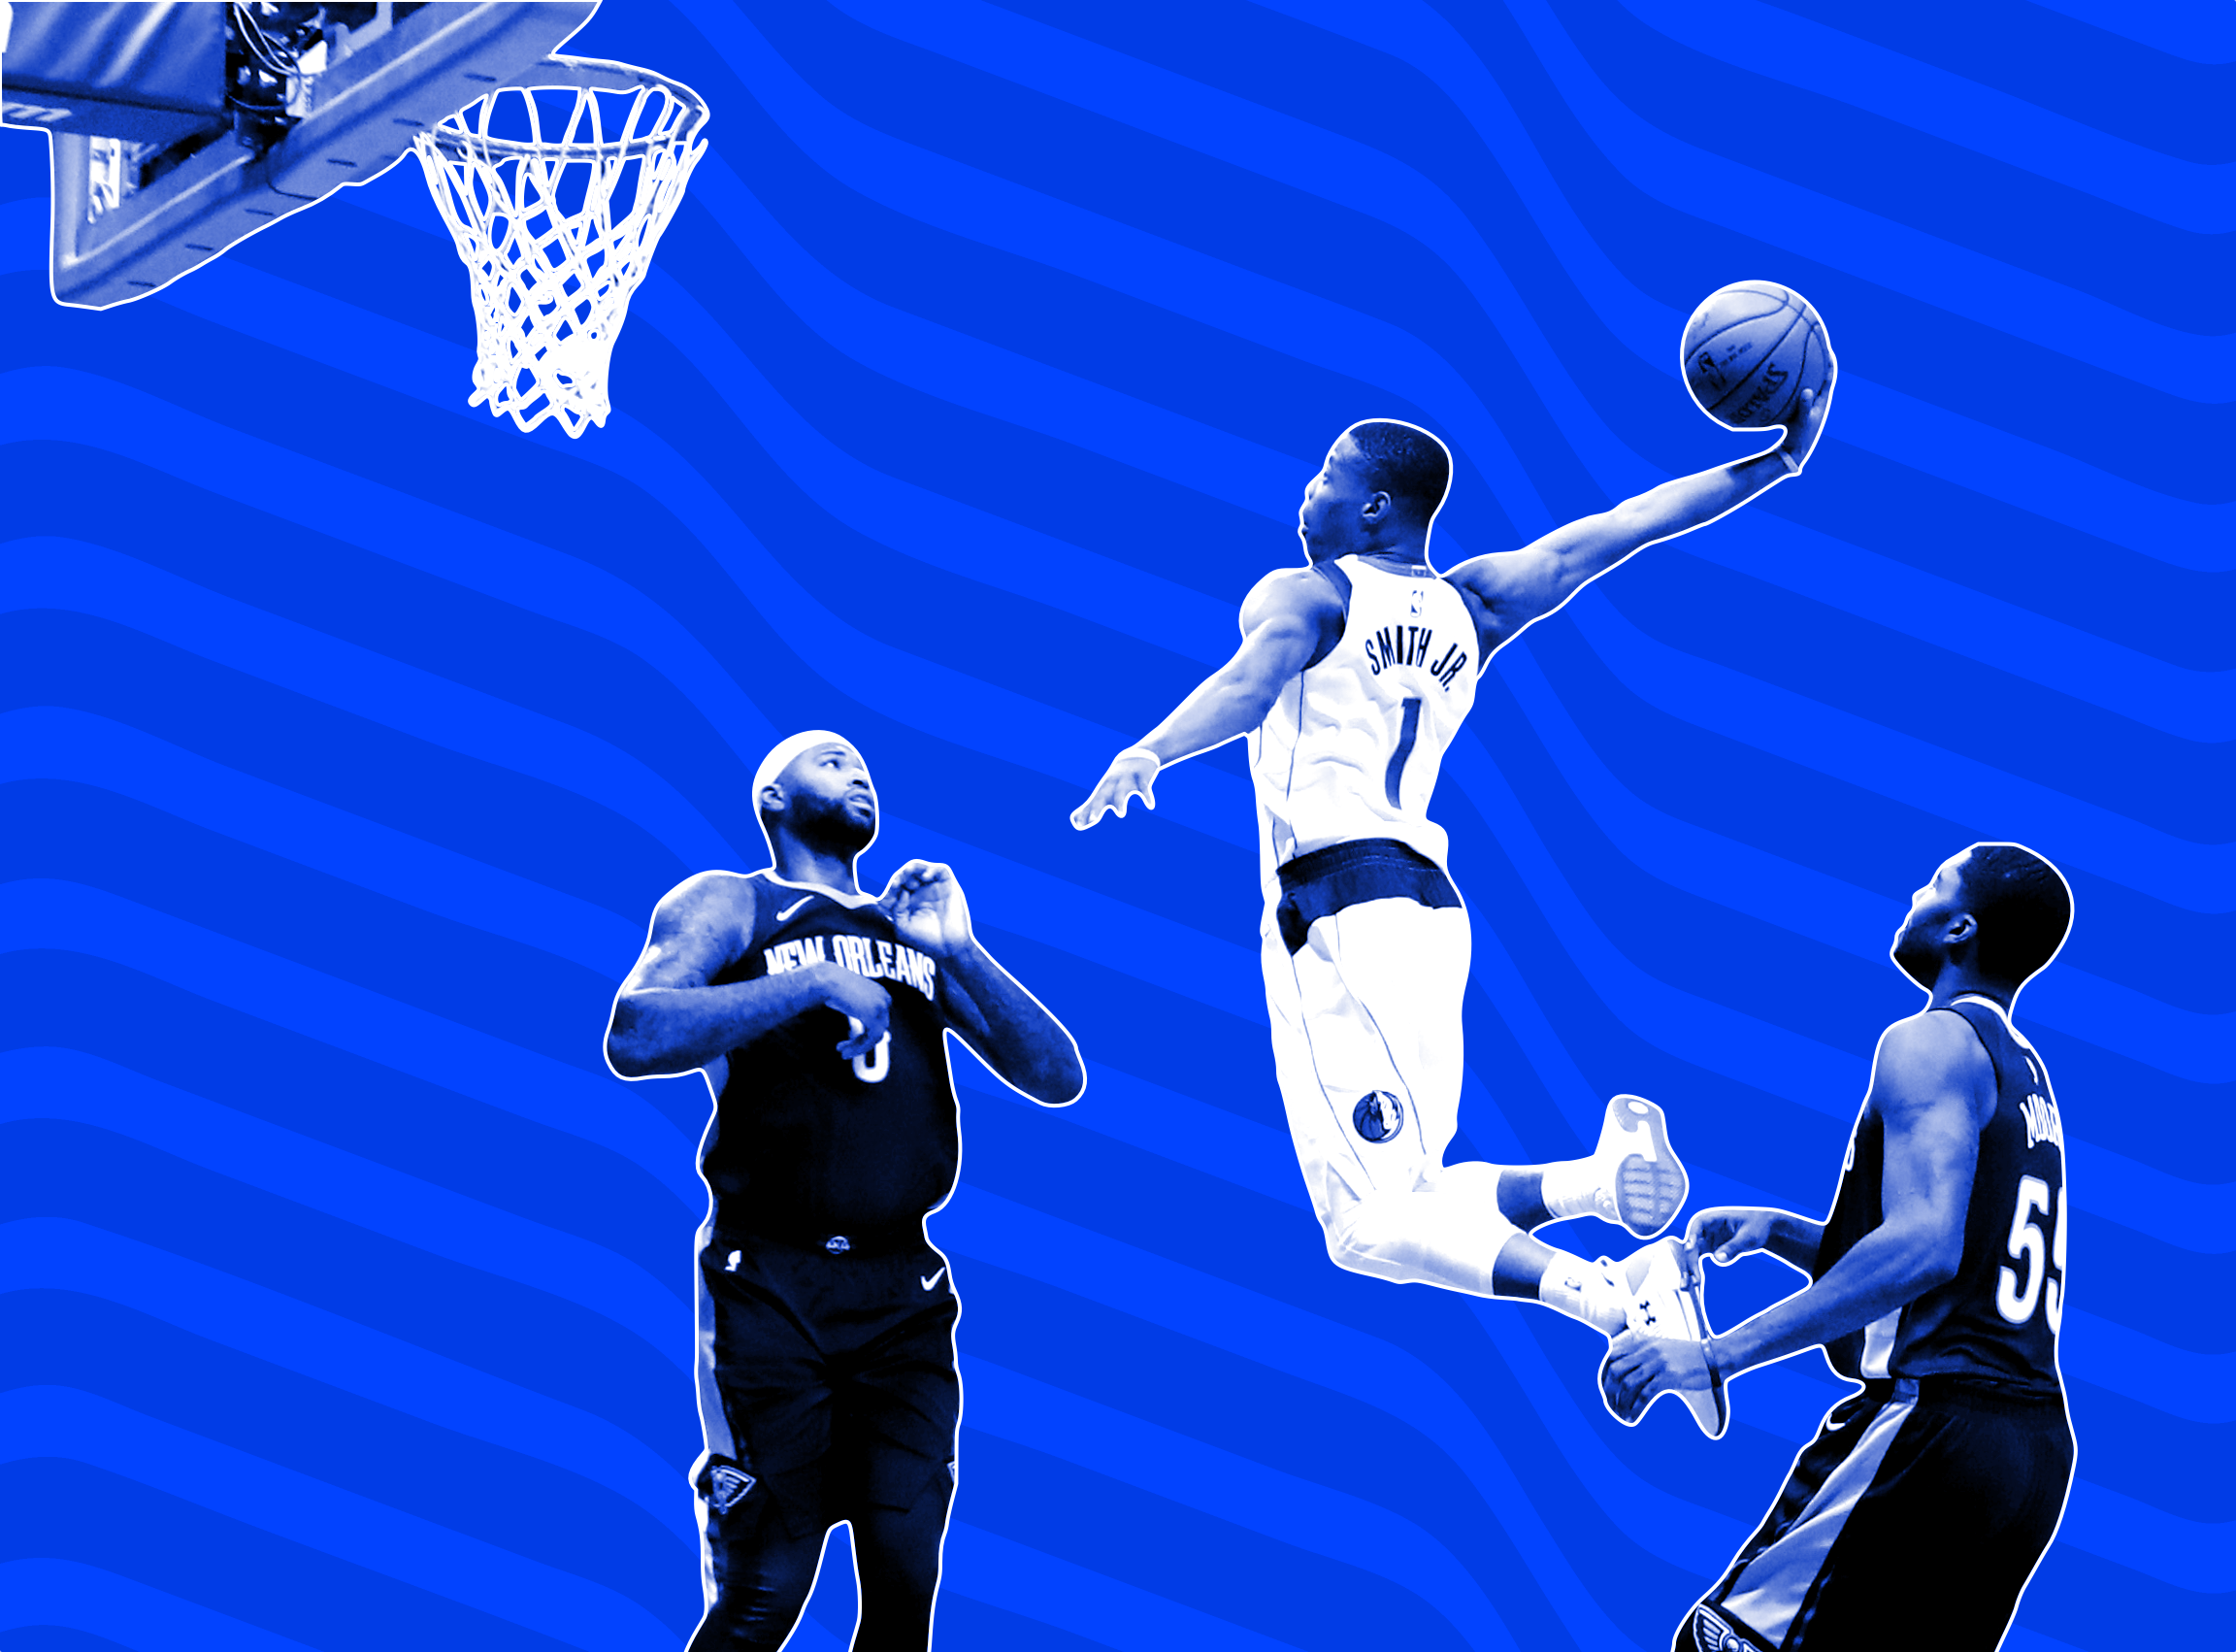 How do NBA players avoid injuries when they jump 3 feet in the air?